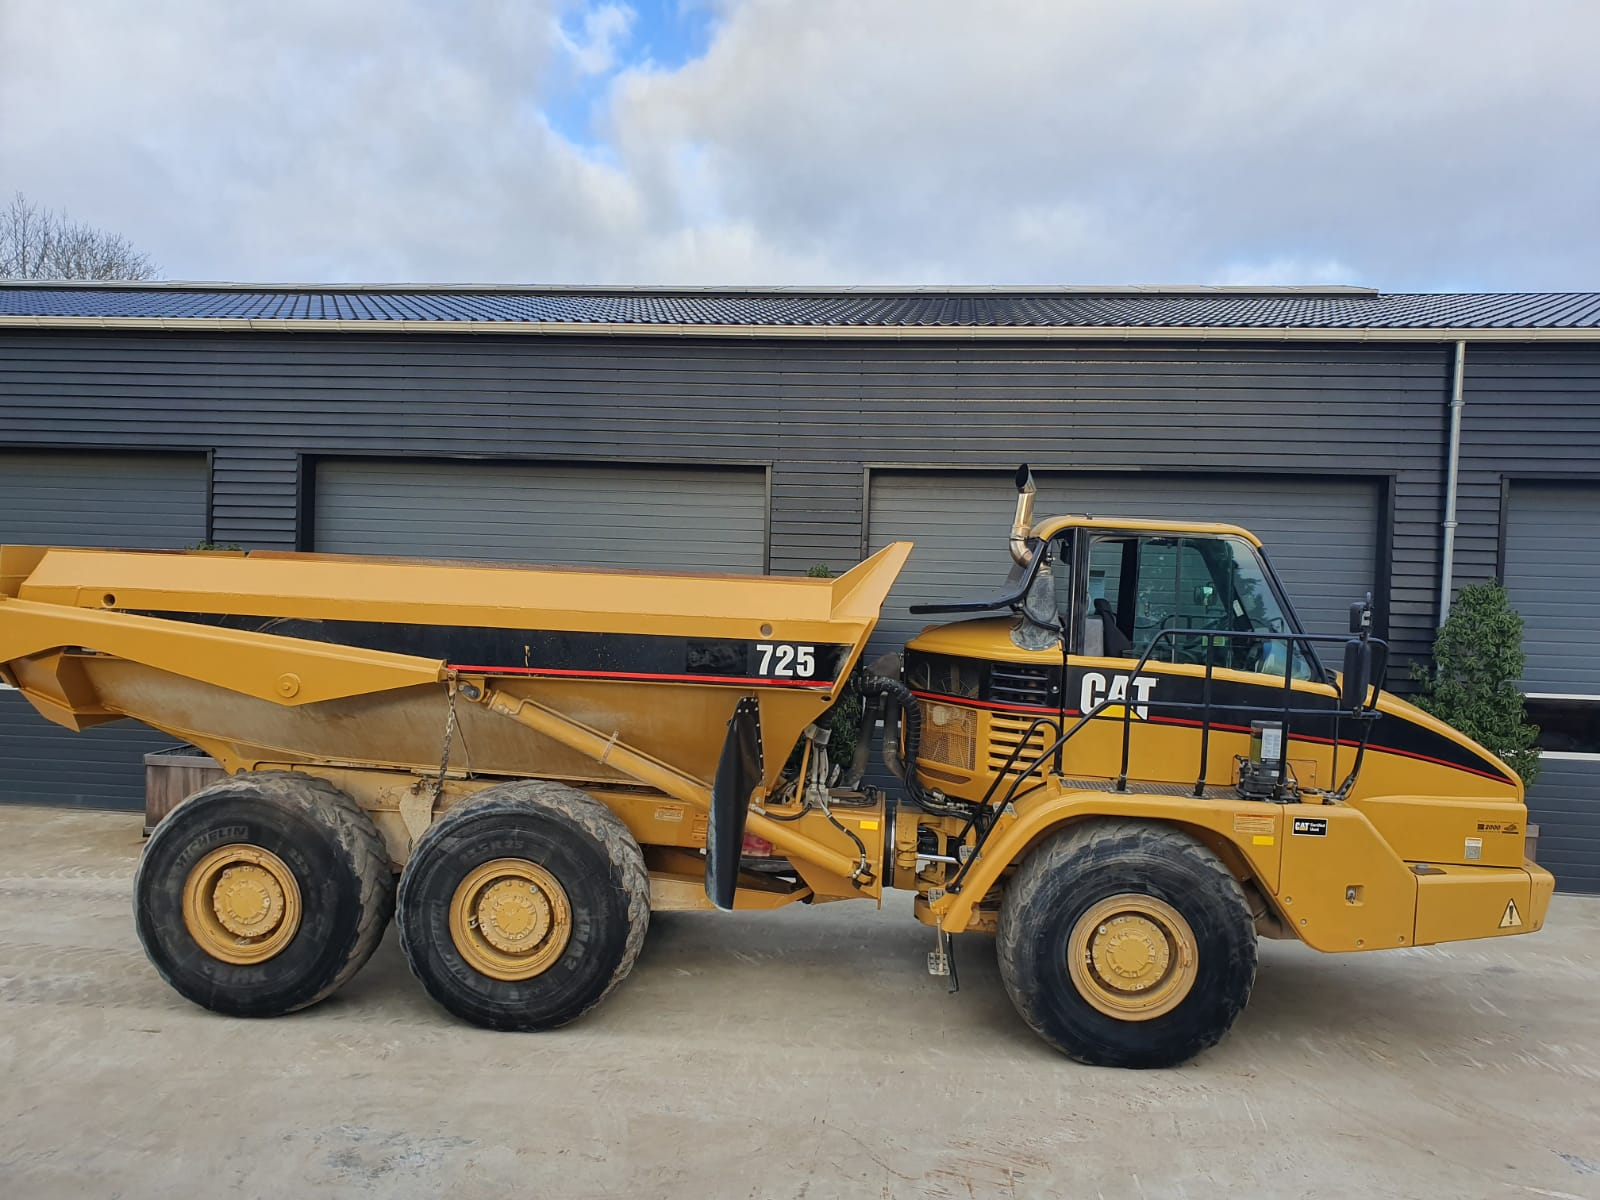 Caterpillar 725 Dumper for rent